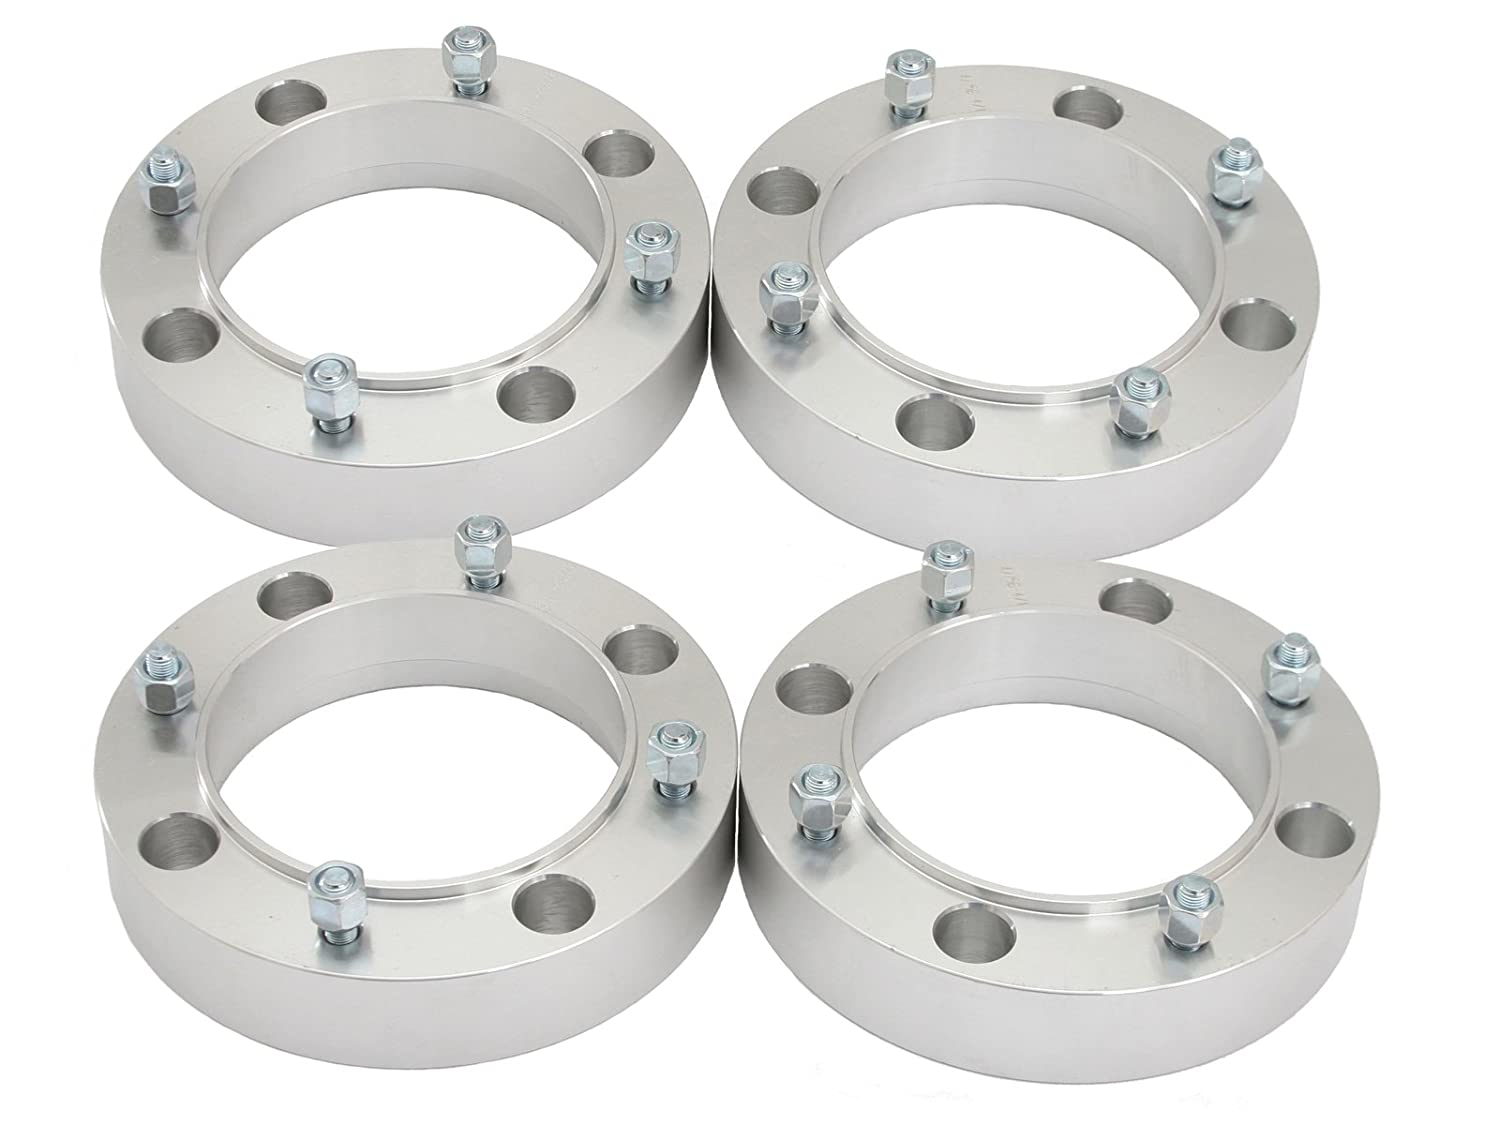 RockTrix for Precision European - 4pc 2' Thick 4x156 ATV Wheel Spacers with 3/8' Studs Nuts for many Polaris & Kawasaki: Predator Ranger RZR Sportsman XP Lakota Mojave Tecate (4/156) Silver Precision European Motorwerks